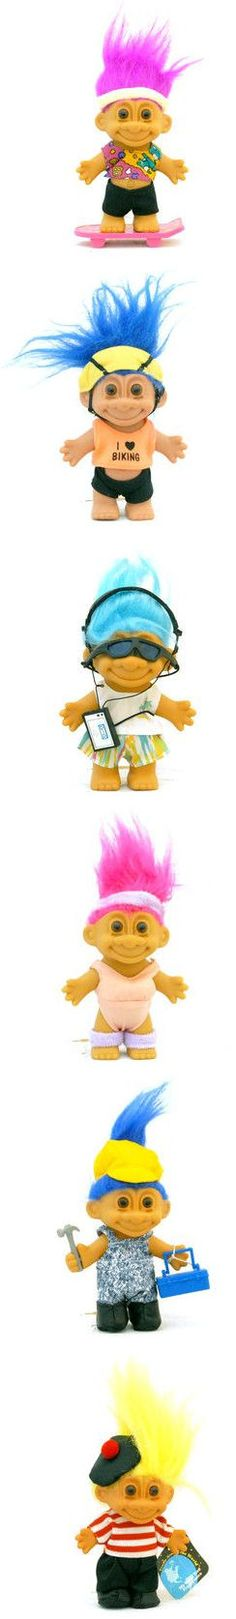 Theresa, remember you use to collect these.... Troll Dolls ARE BACK!! lol Memories from my Childhood! #80's